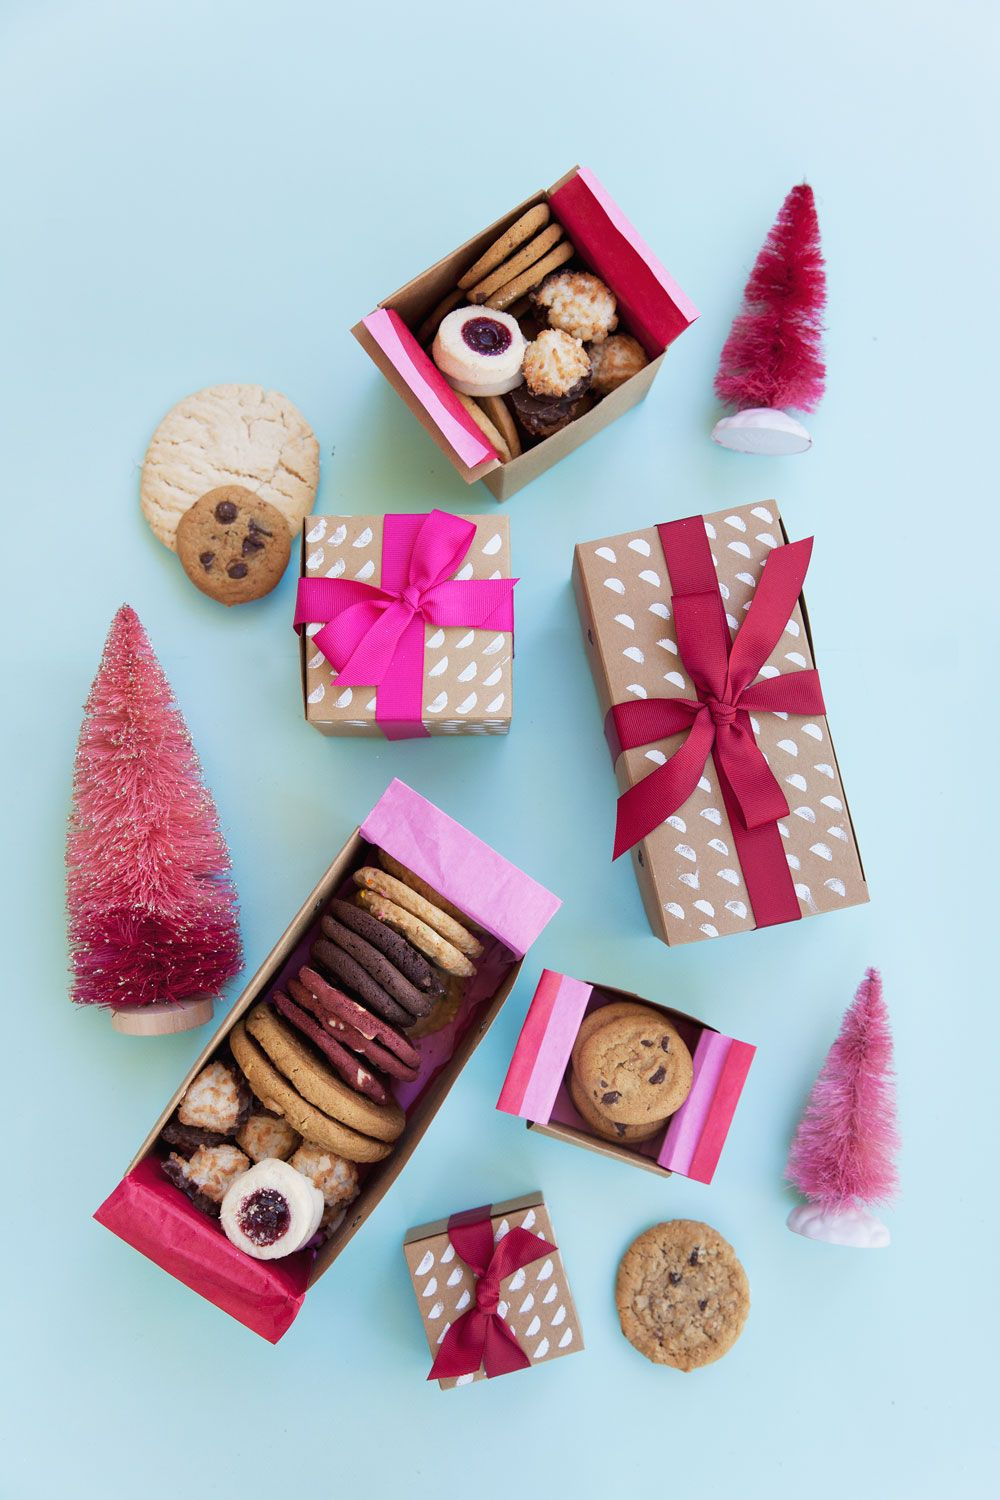 DIY COOKIE GIFT BOXES Cookie gift boxes, Homemade gifts